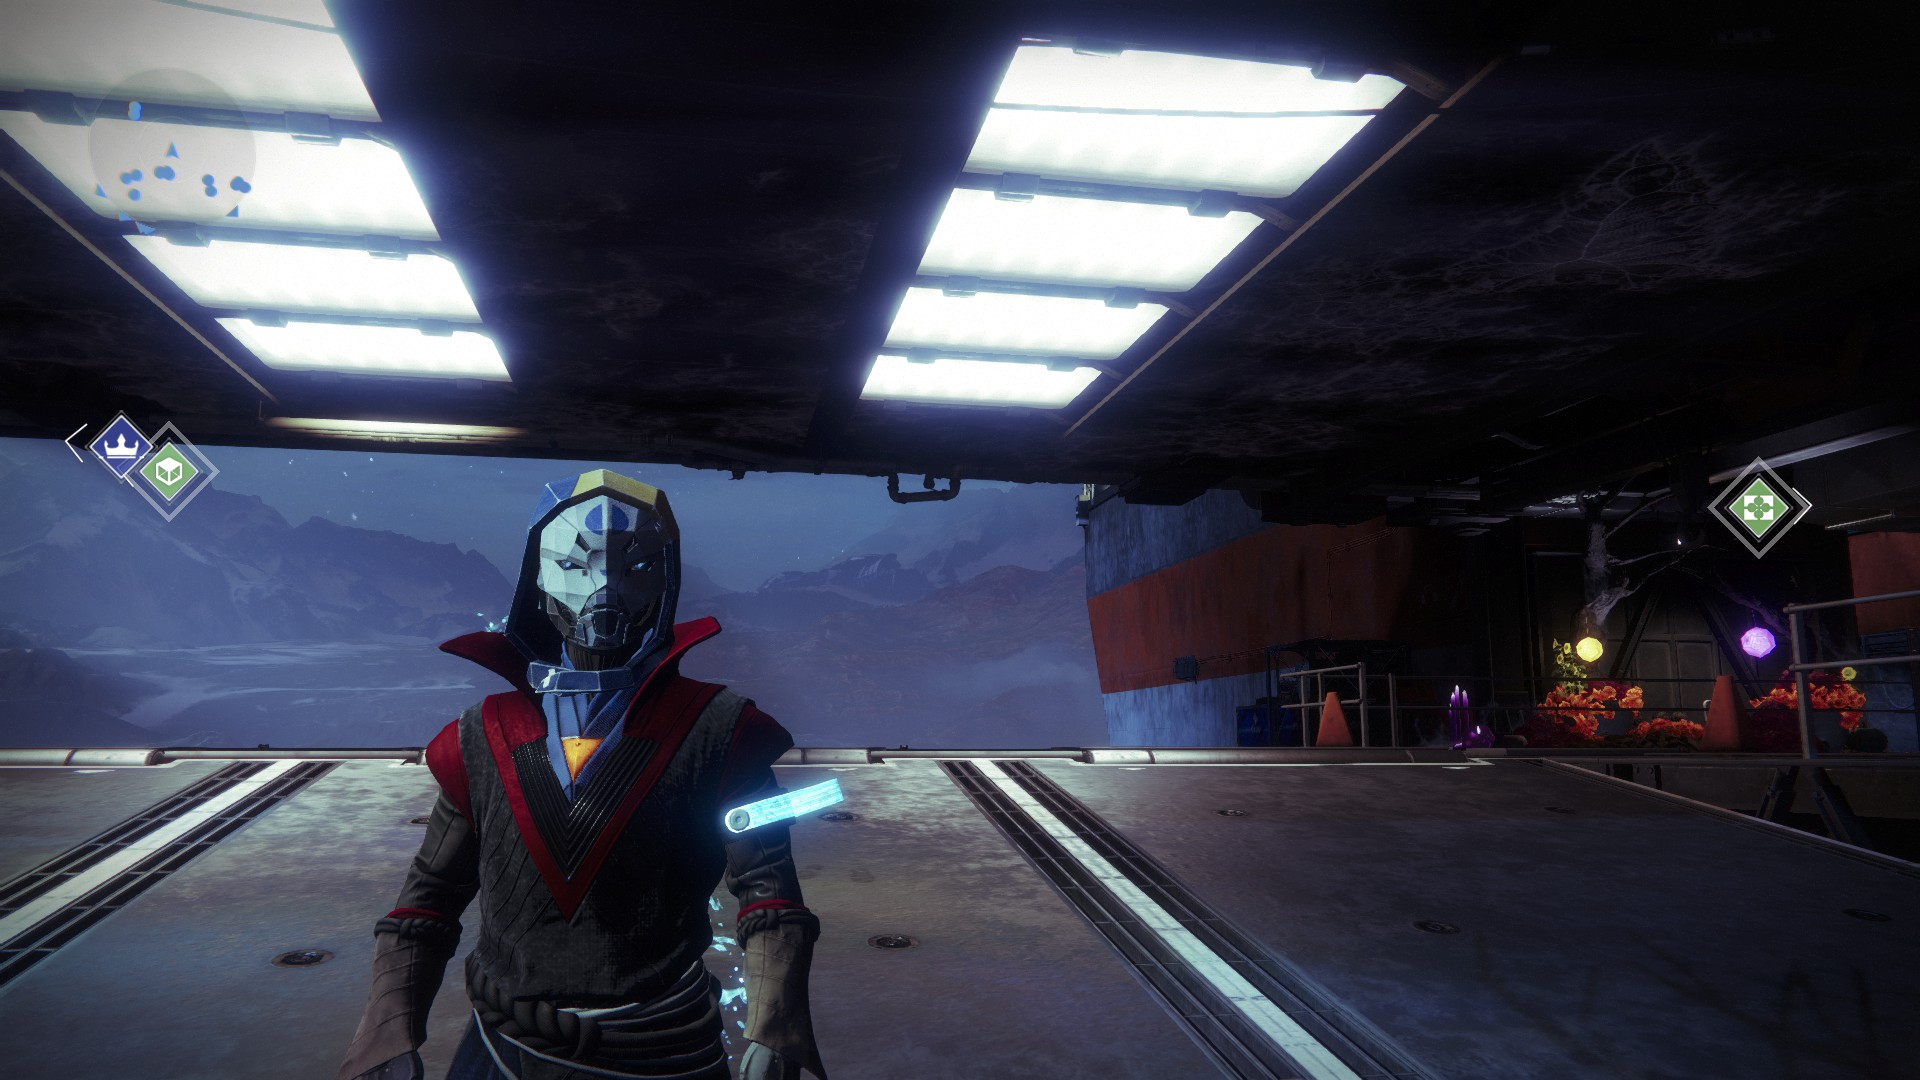 A character standing in the tower wearing a mask like a hooded robot person